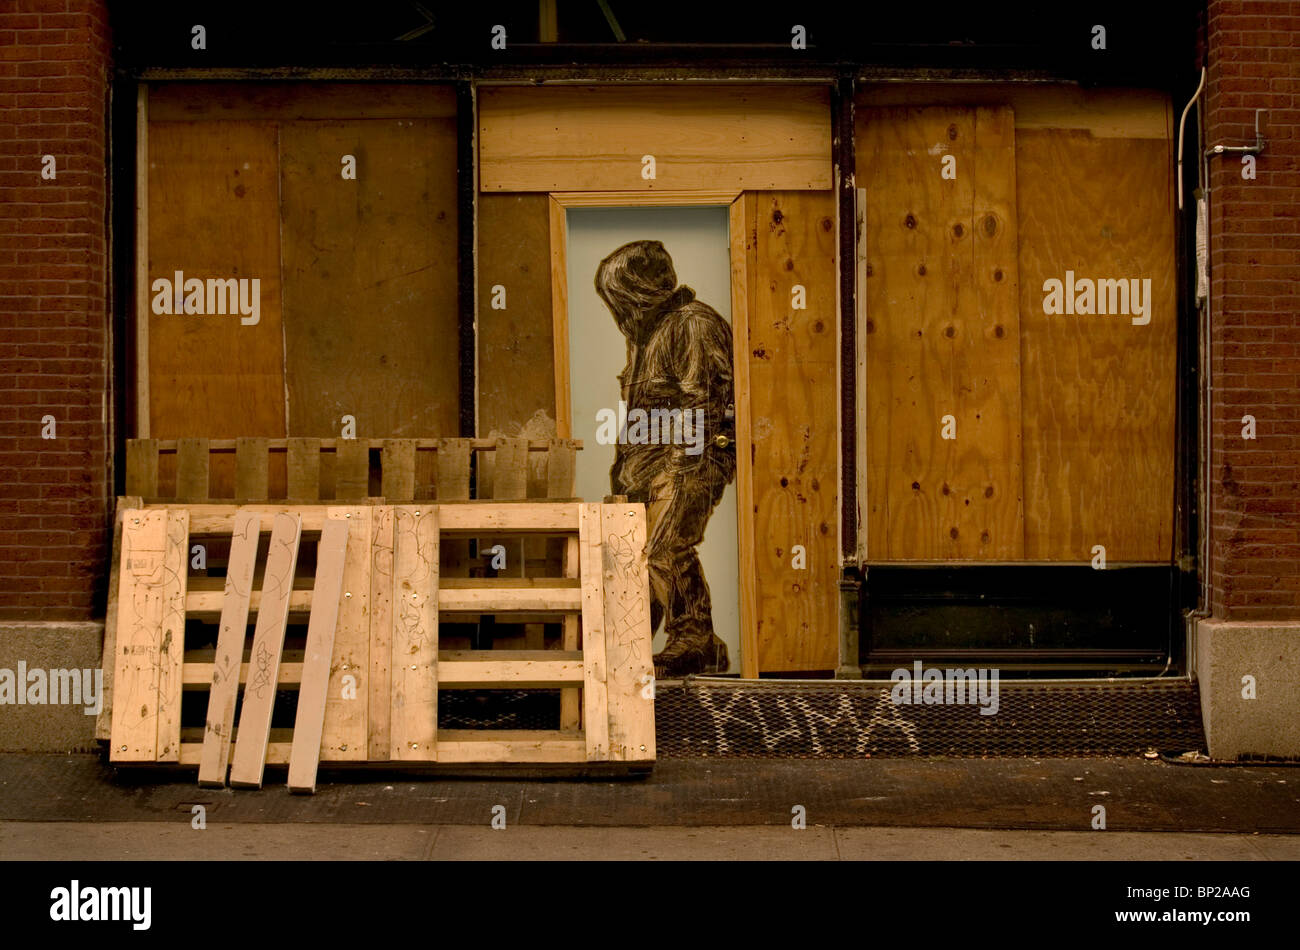 Graffiti art showing a man in a hoody painted in a wooden doorway, in the Soho district of New York City, USA. - Stock Image